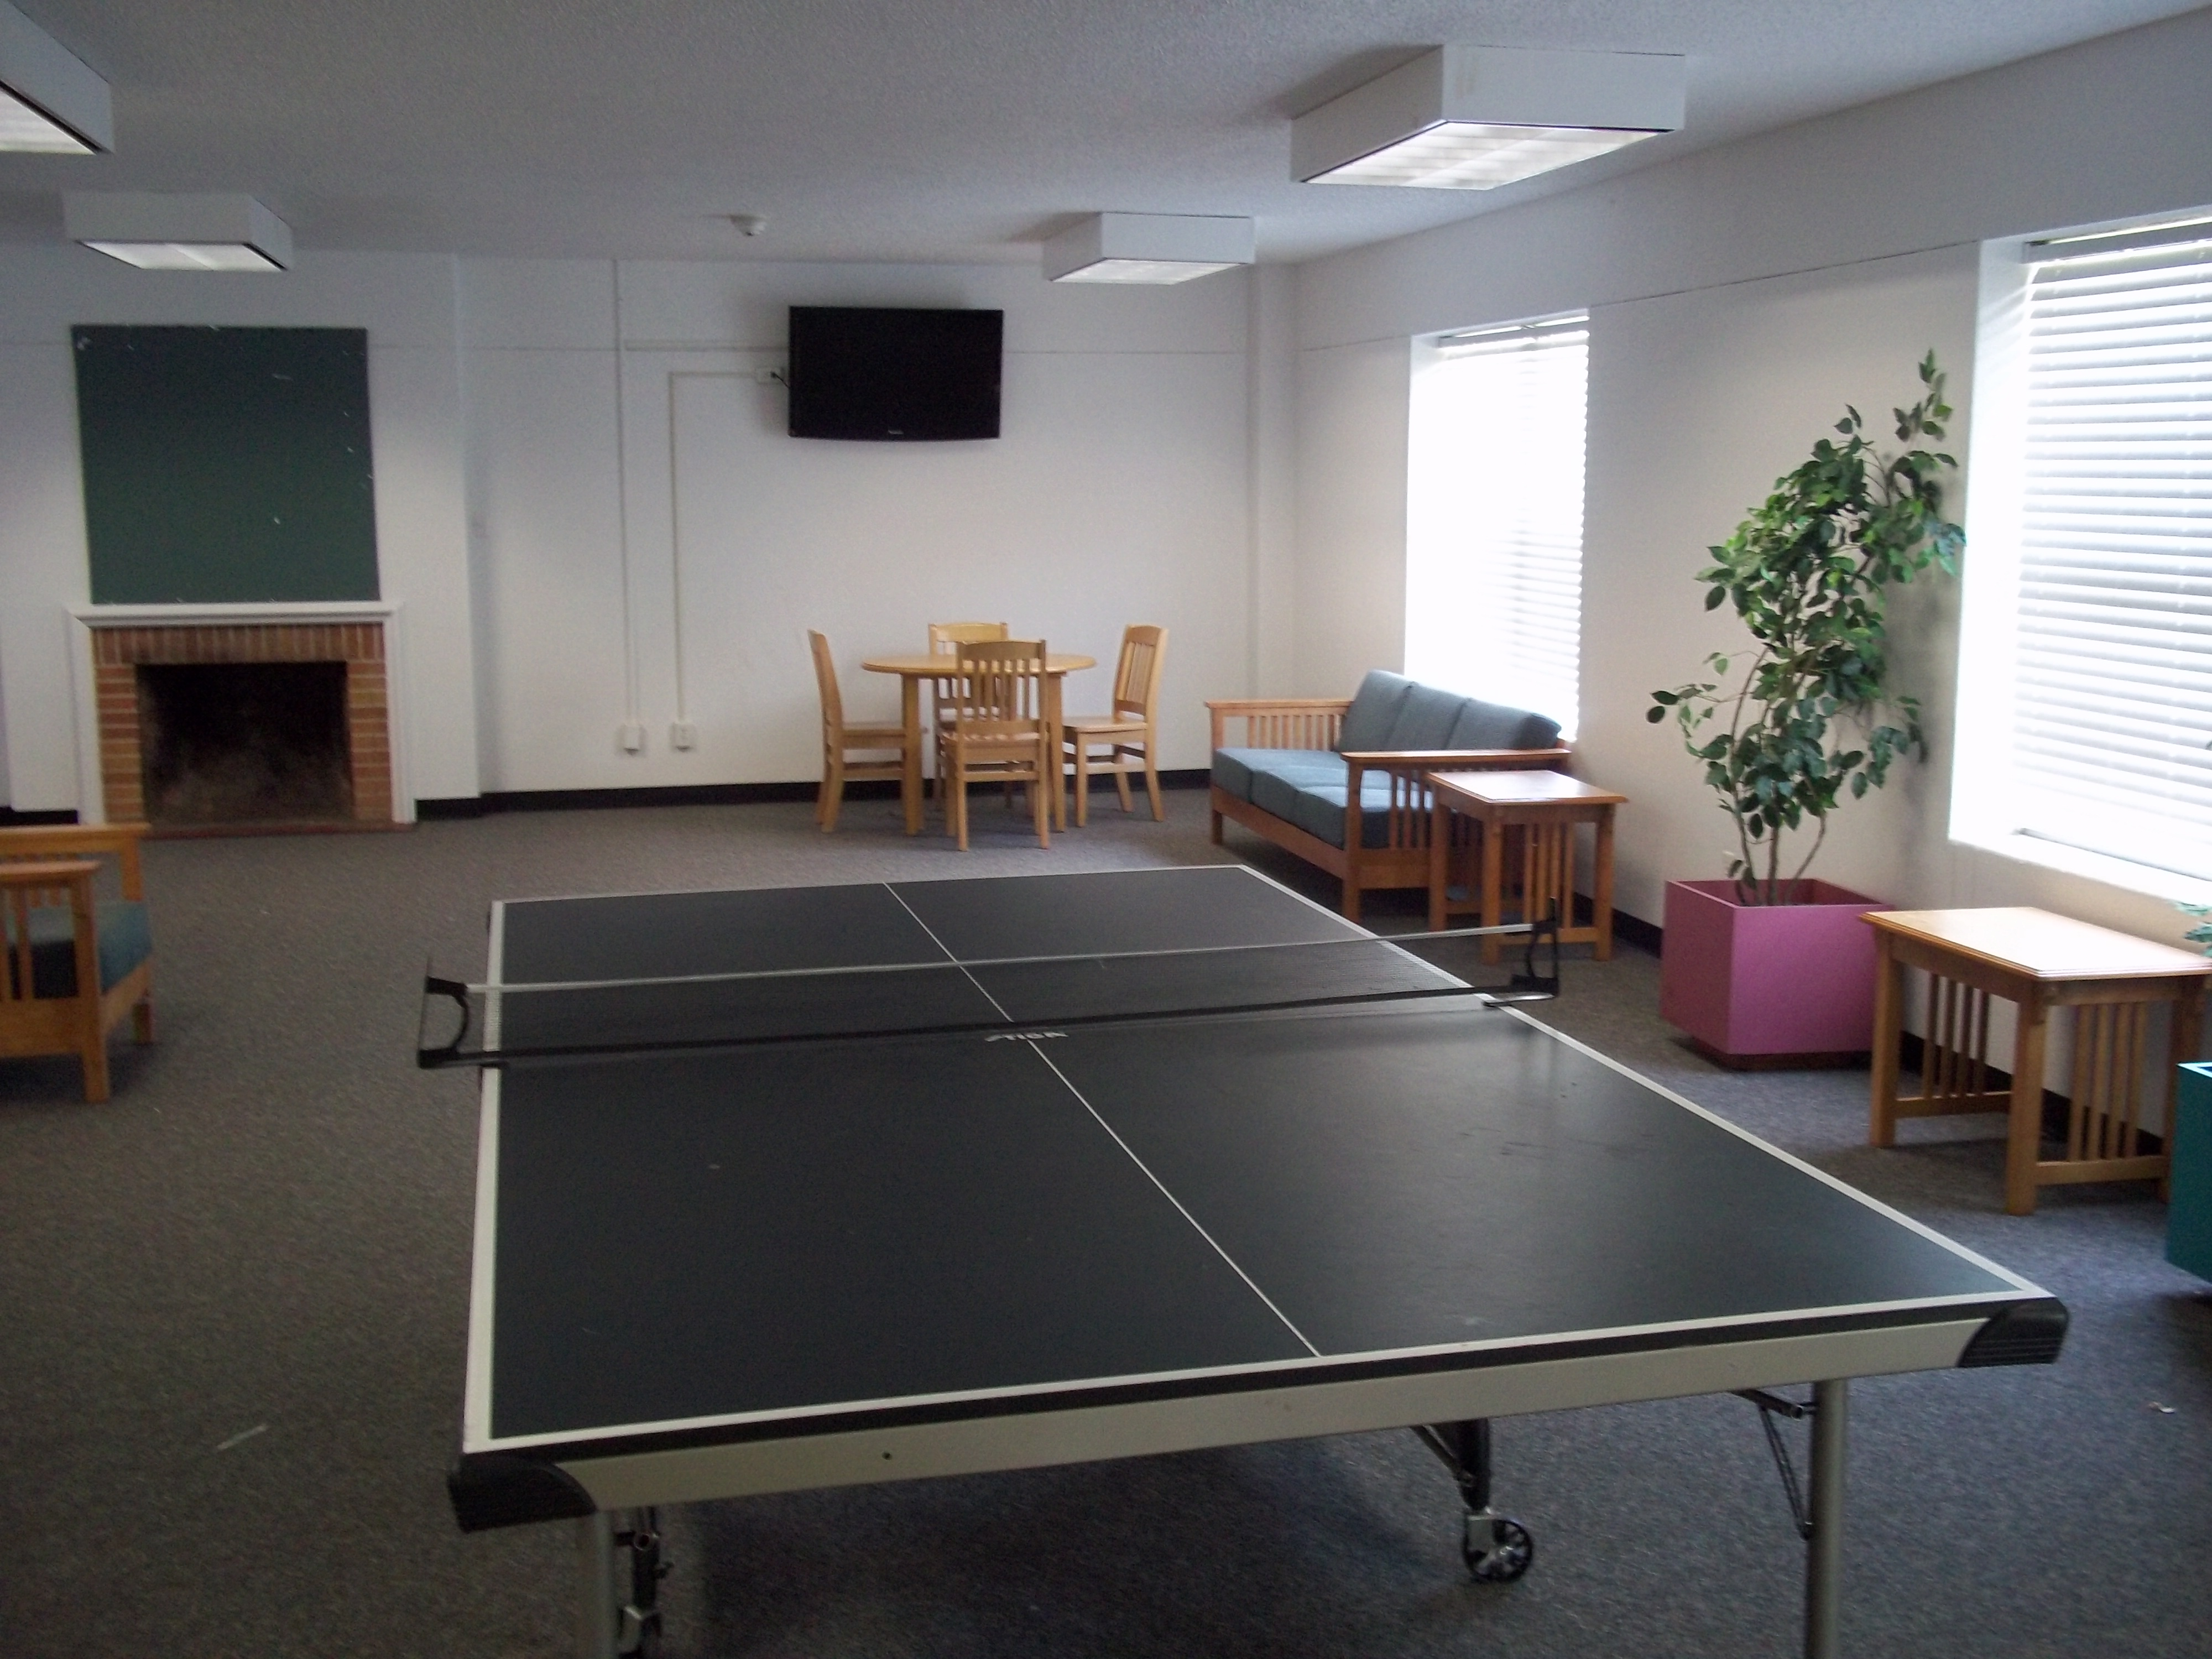 Ping pong table in common area.